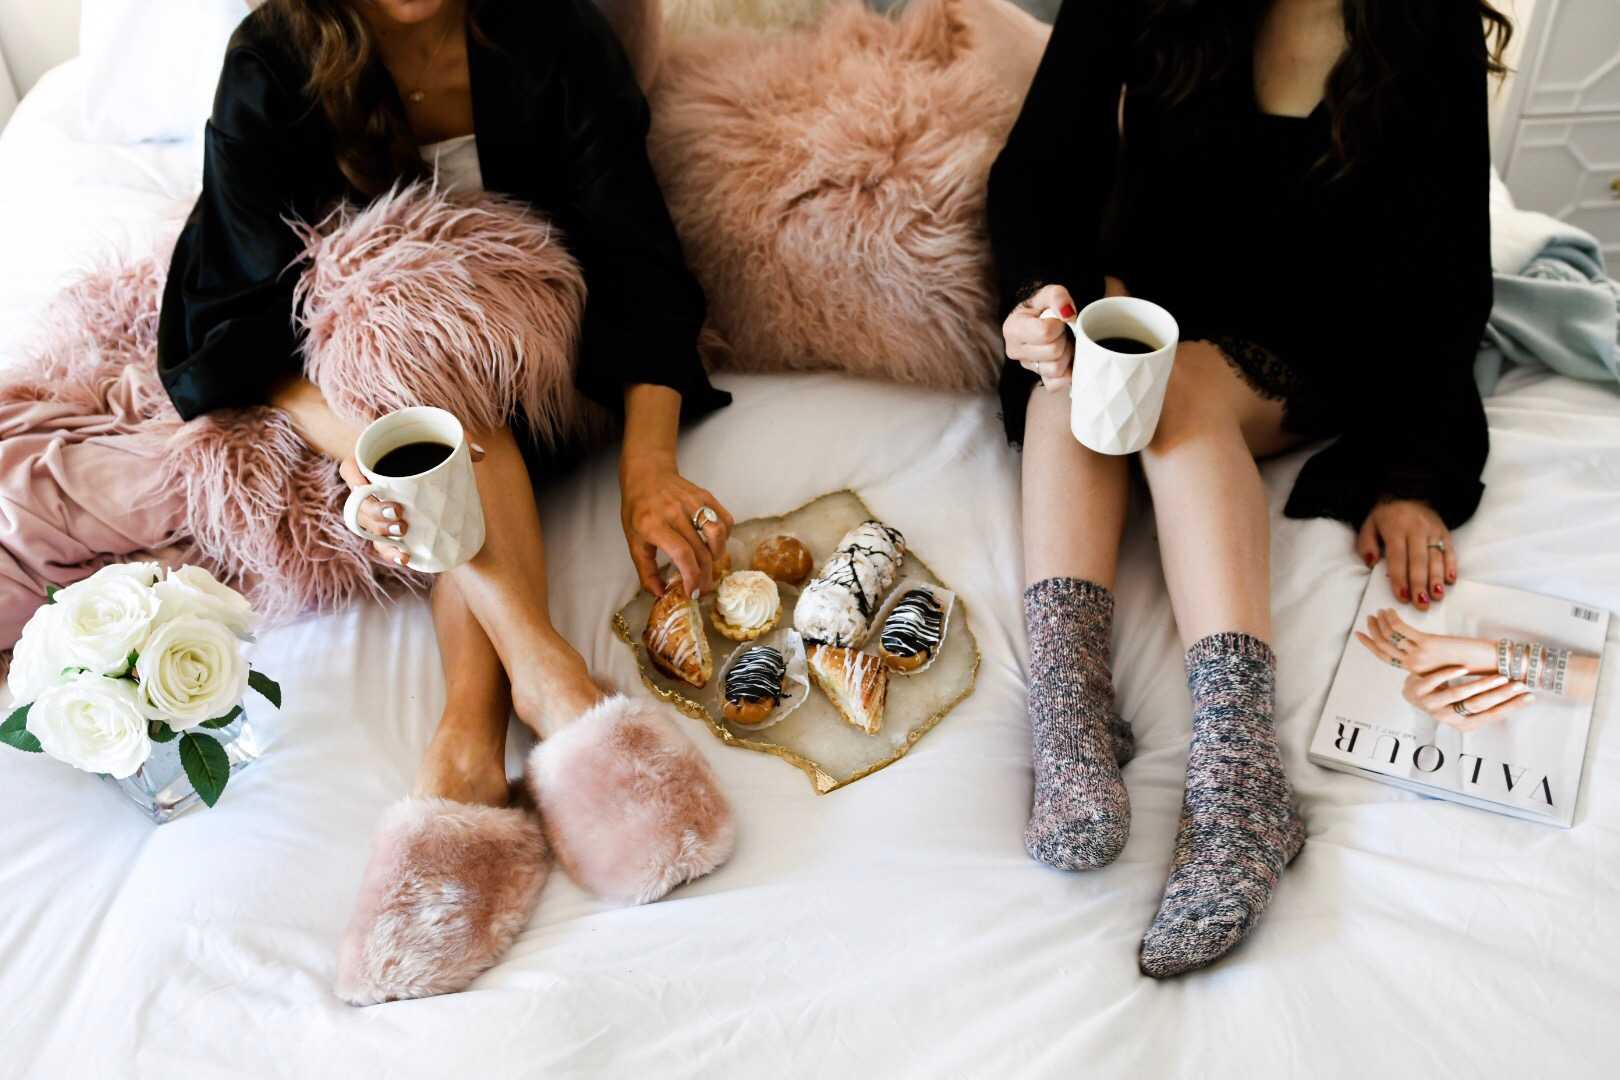 Girls' Night In With Valour Magazine Esther Santer Fashion Blog NYC Street Style Blogger Outfit OOTD Trendy Eishes Style Cozy Blanket Throw Pillows Flowers Desserts Pastries Black Robes Pink Fur Fuzzy Slippers Jcrew Adore Me Socks  Mugs Coffee  Women.jpg